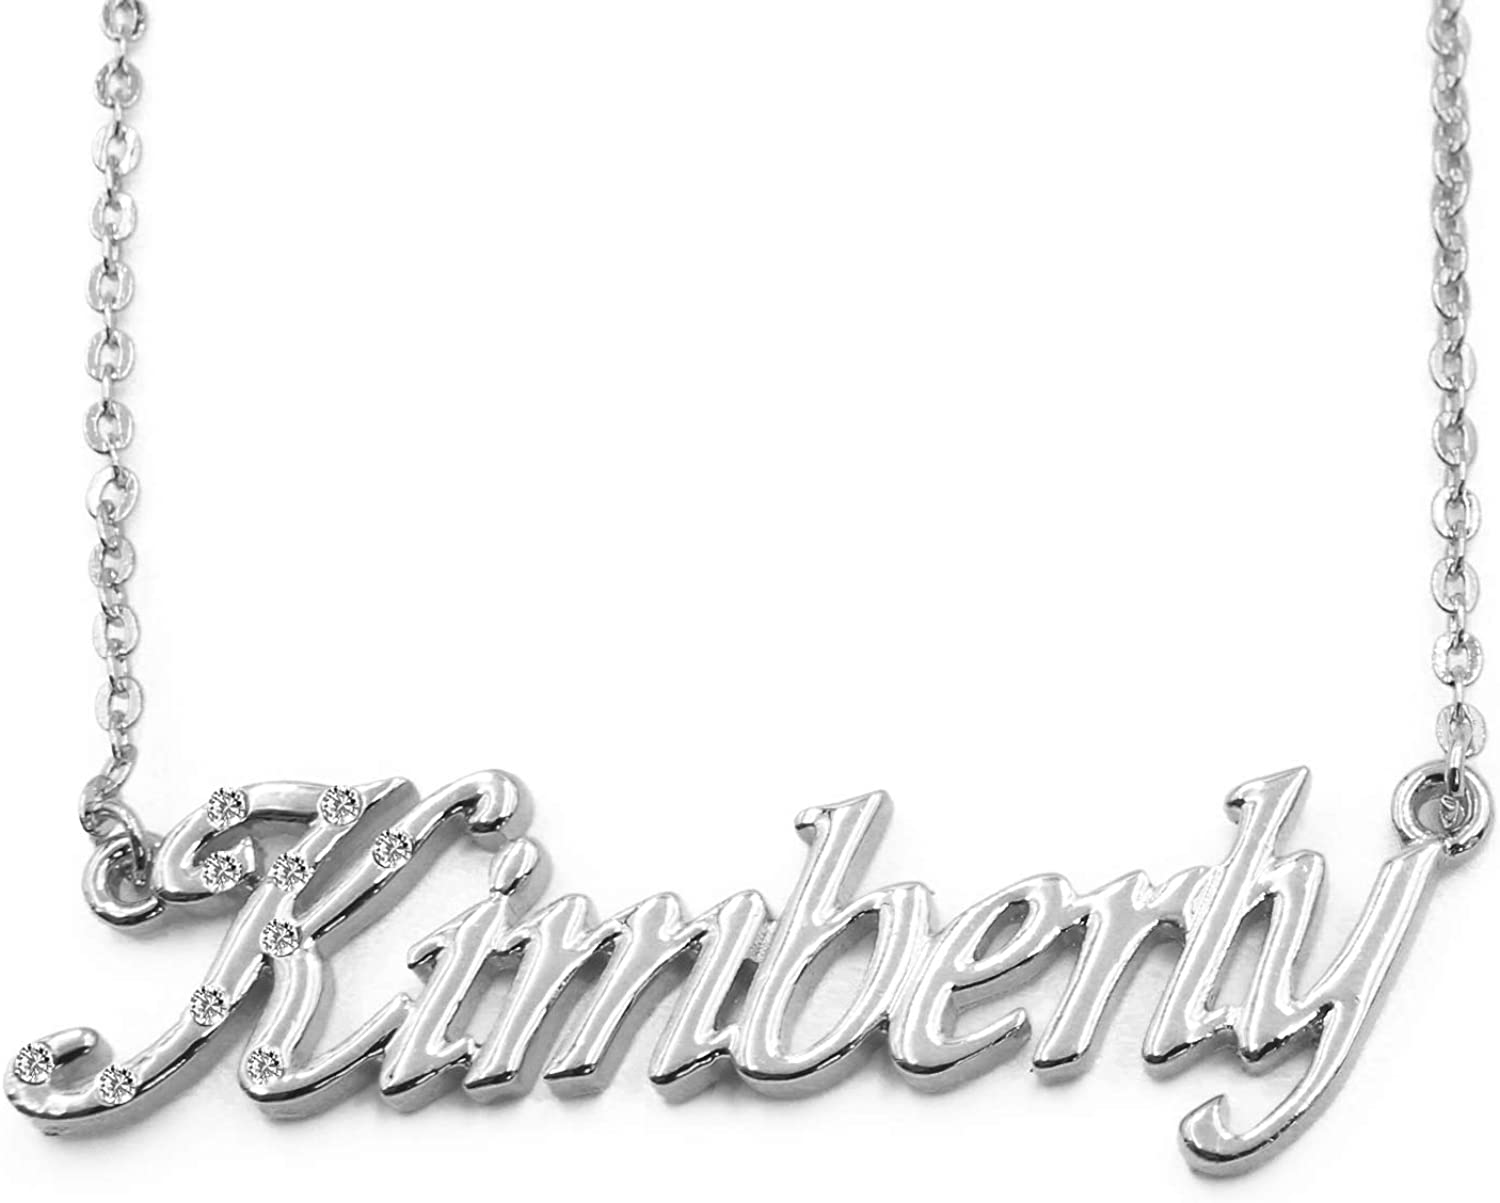 Kimberly Name Purchase Necklace 18K White Personalized Dainty Luxury goods Plated Gold